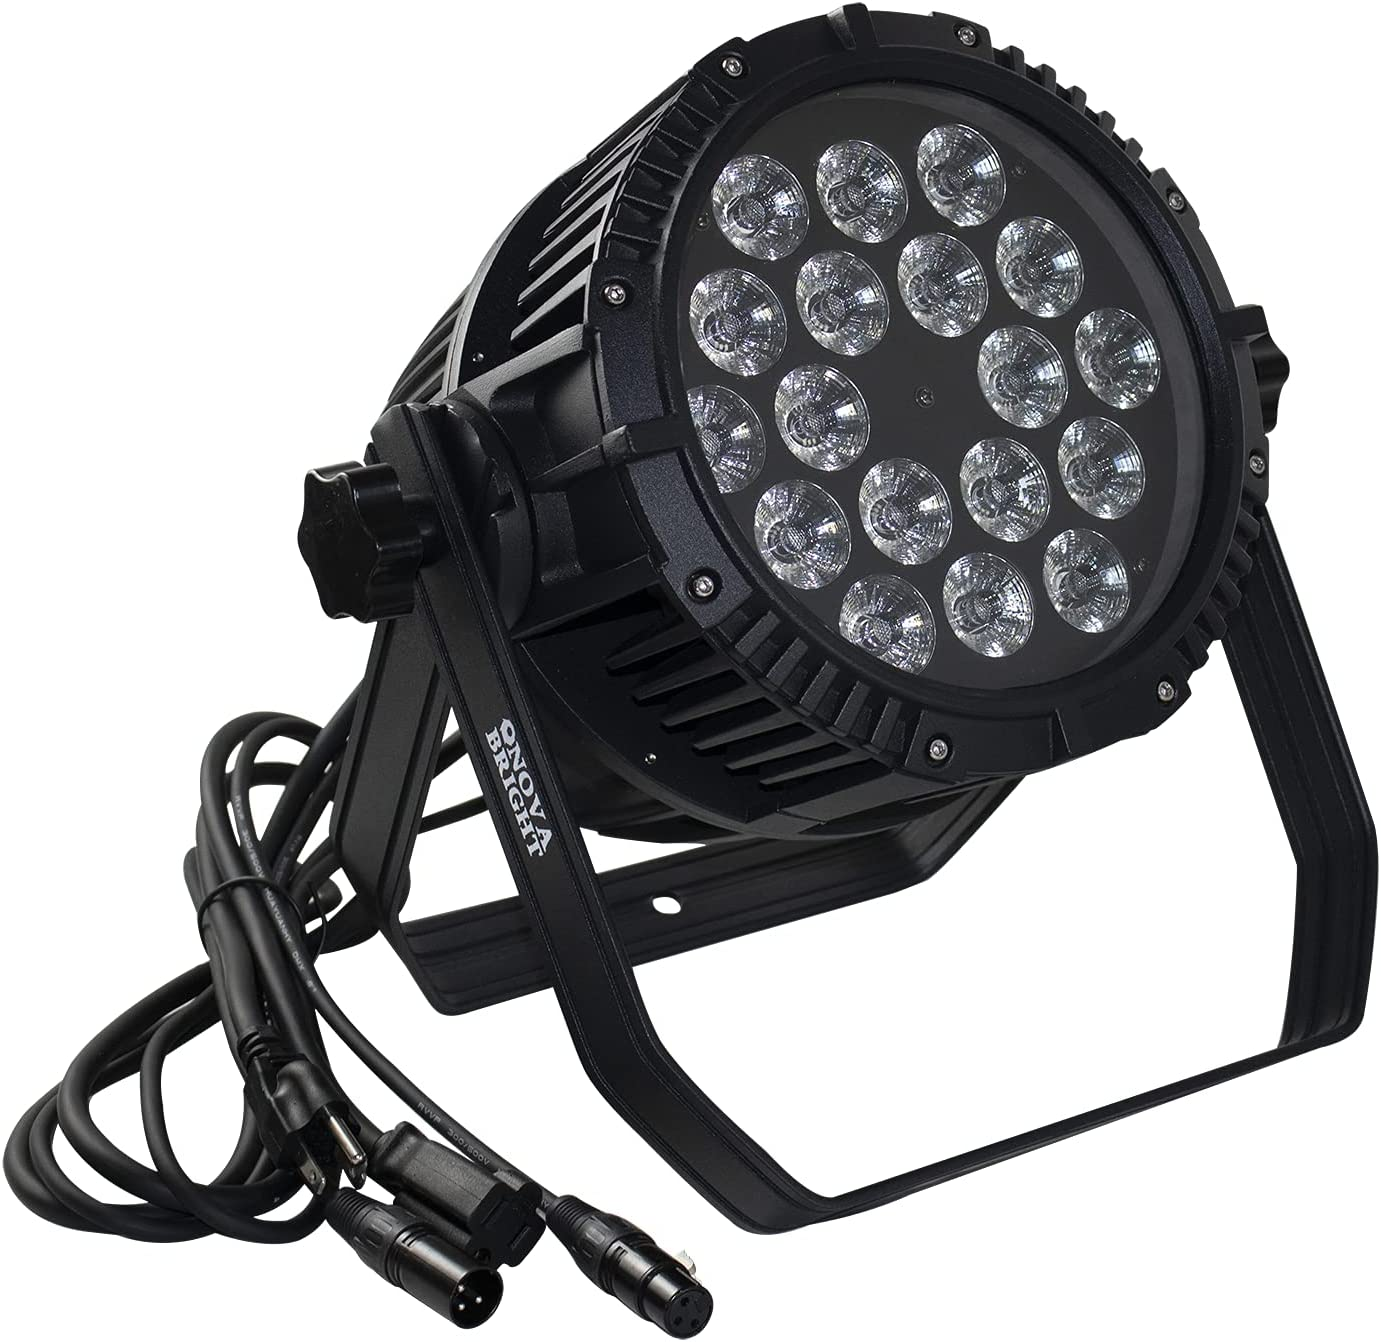 18x18W RGB TriColor Financial sales sale sale 3in1 LED Professional IP65 Stage Outdoor